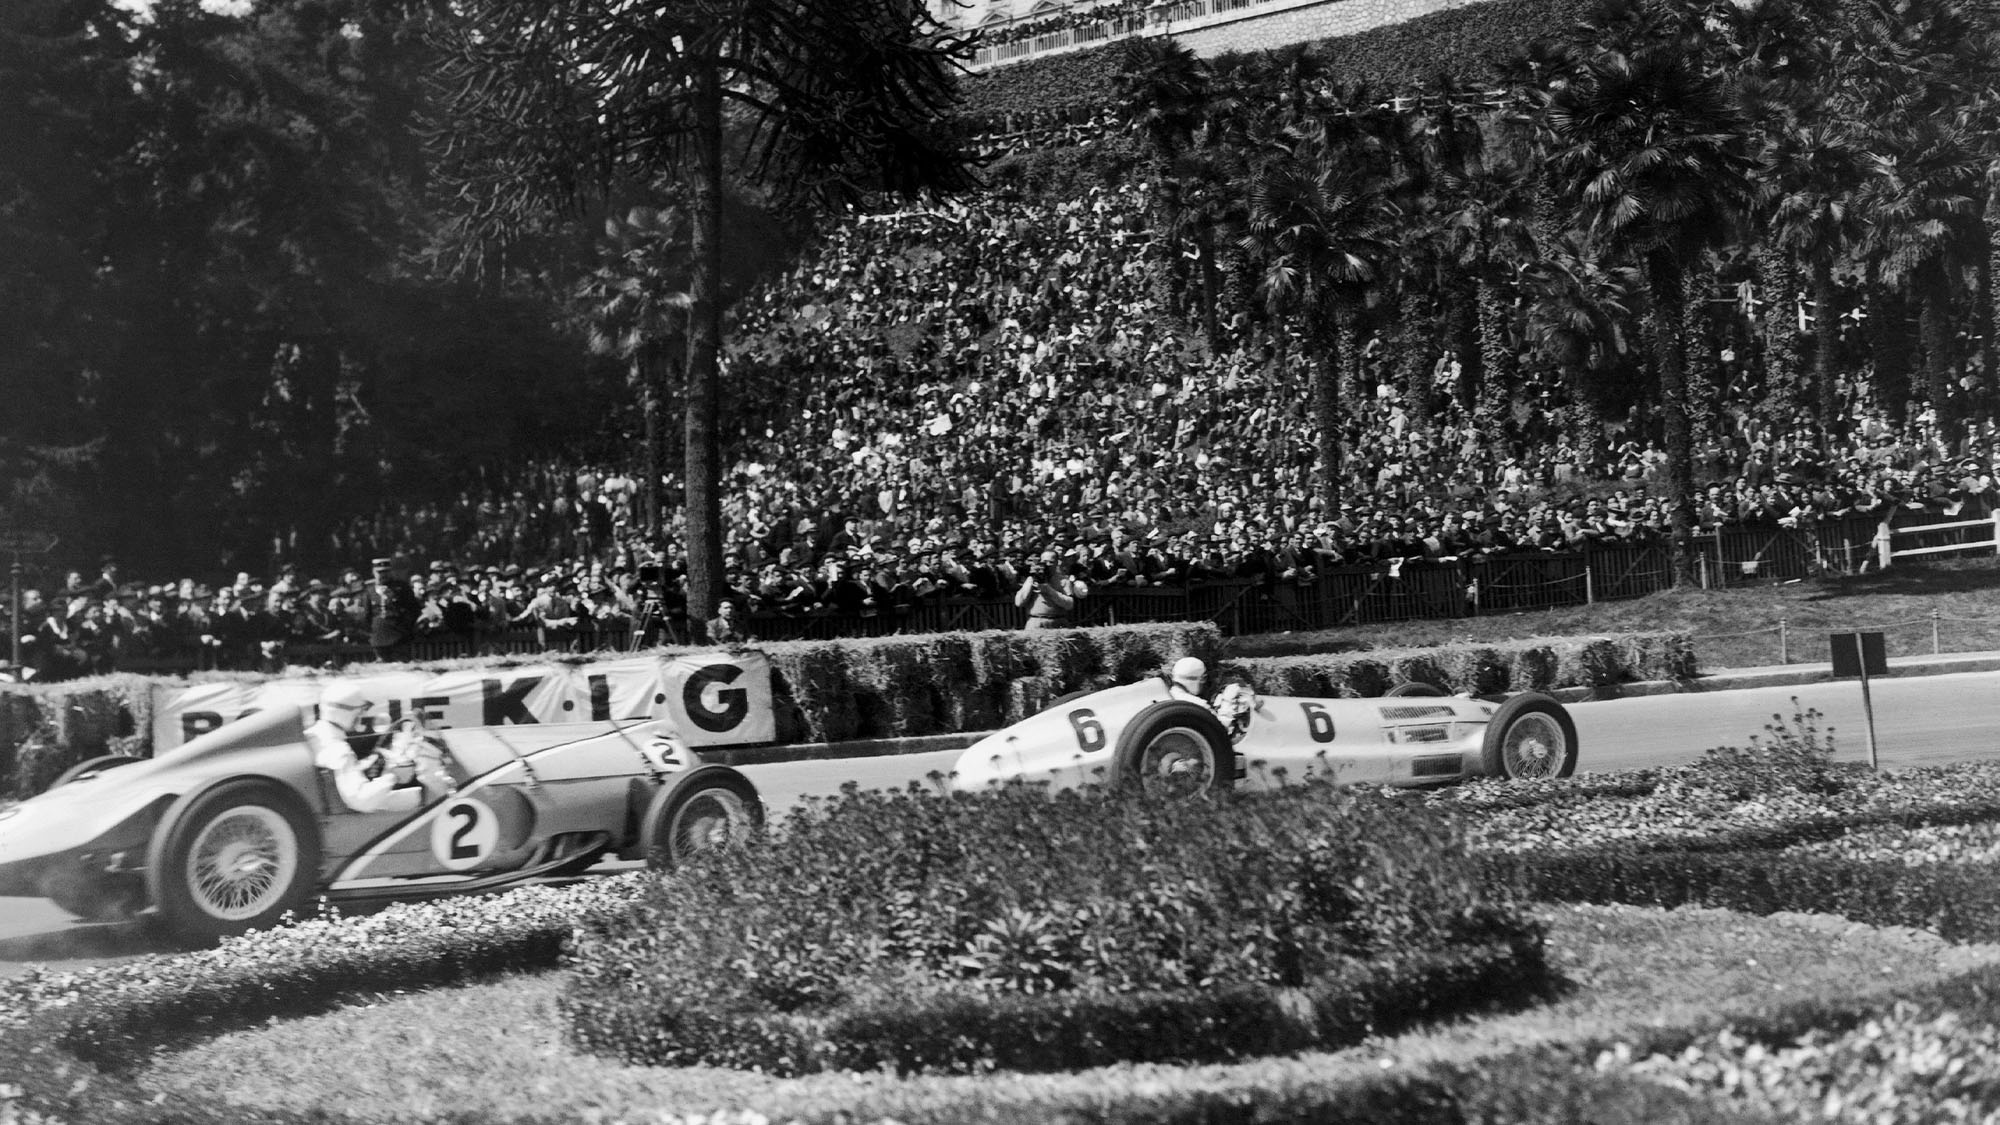 FRANCE - APRIL 11: On The Racing Circuit At The Grand Prix De Pau On April 11, 1938, The French Racecar Driver Rene Dreyfus, In A Delaye 145 (Number 2) Fights For Vies For First Place With Rudolf Caracciola In His Mercedes-Benz W154 (Number 6). (Photo by Keystone-France/Gamma-Keystone via Getty Images)